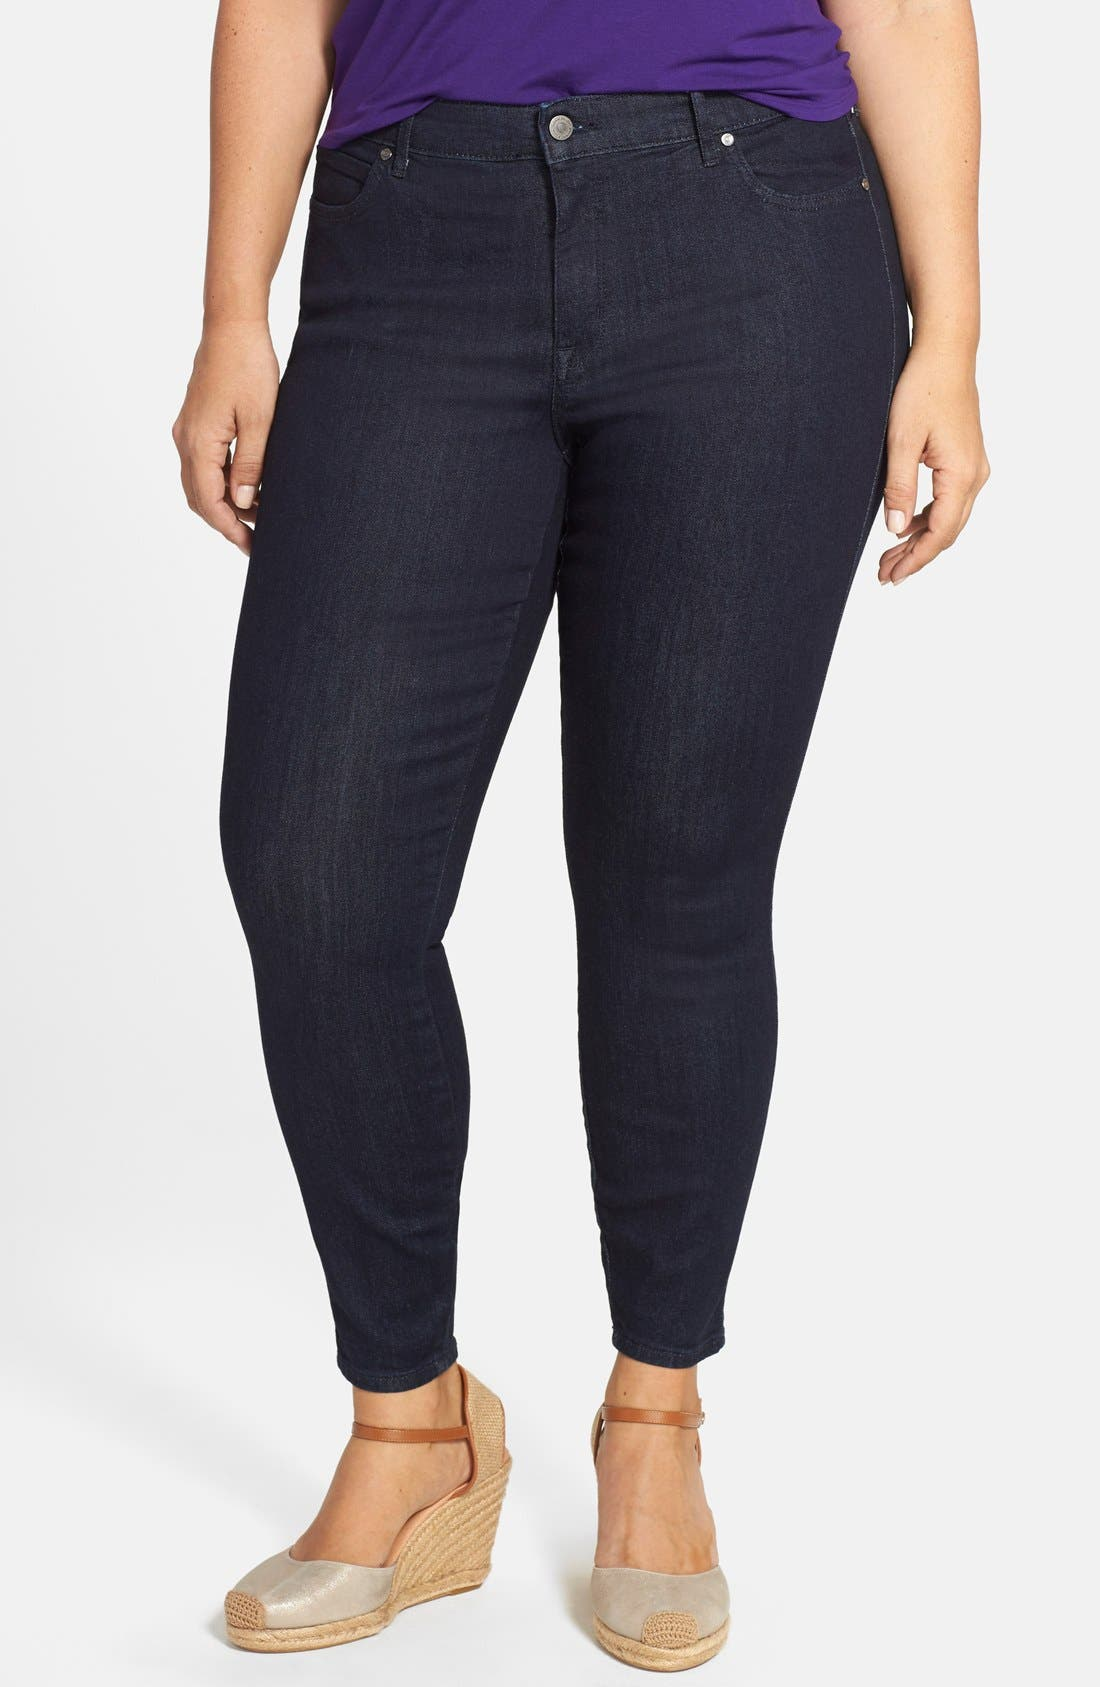 'Wisdom' Stretch Ankle Skinny Jeans,                             Main thumbnail 1, color,                             400